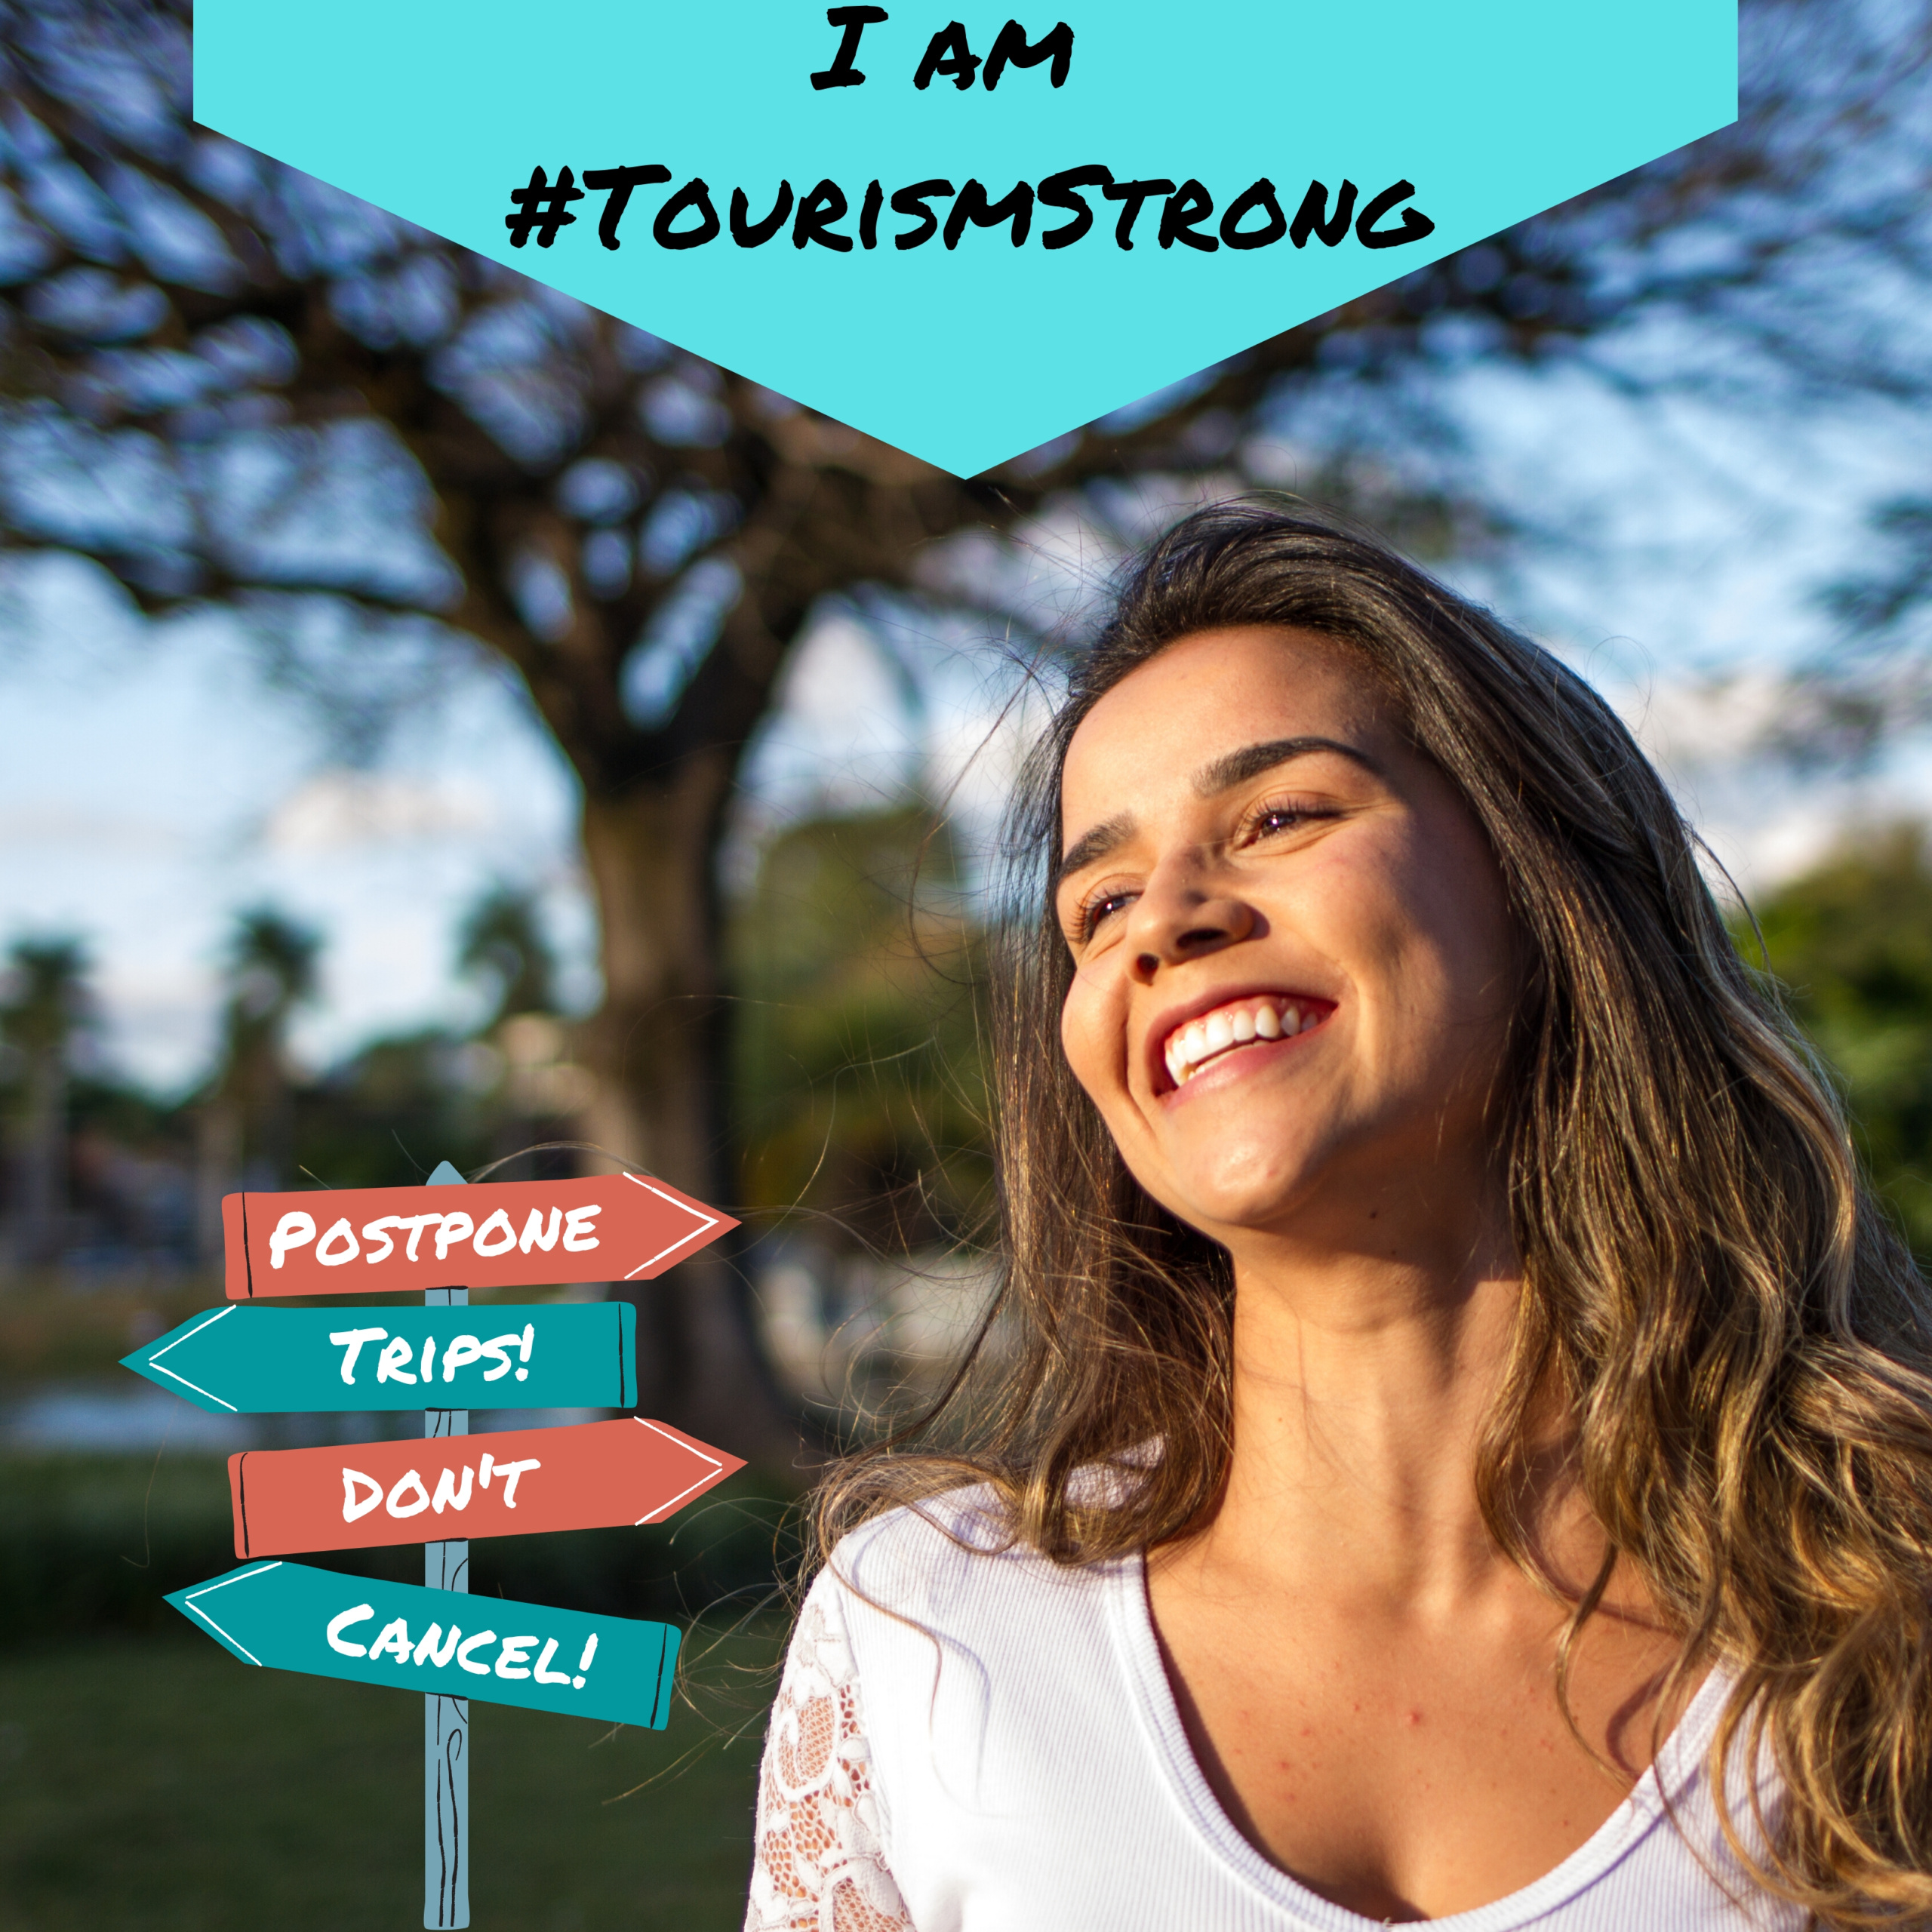 tourism strong profile pic frame